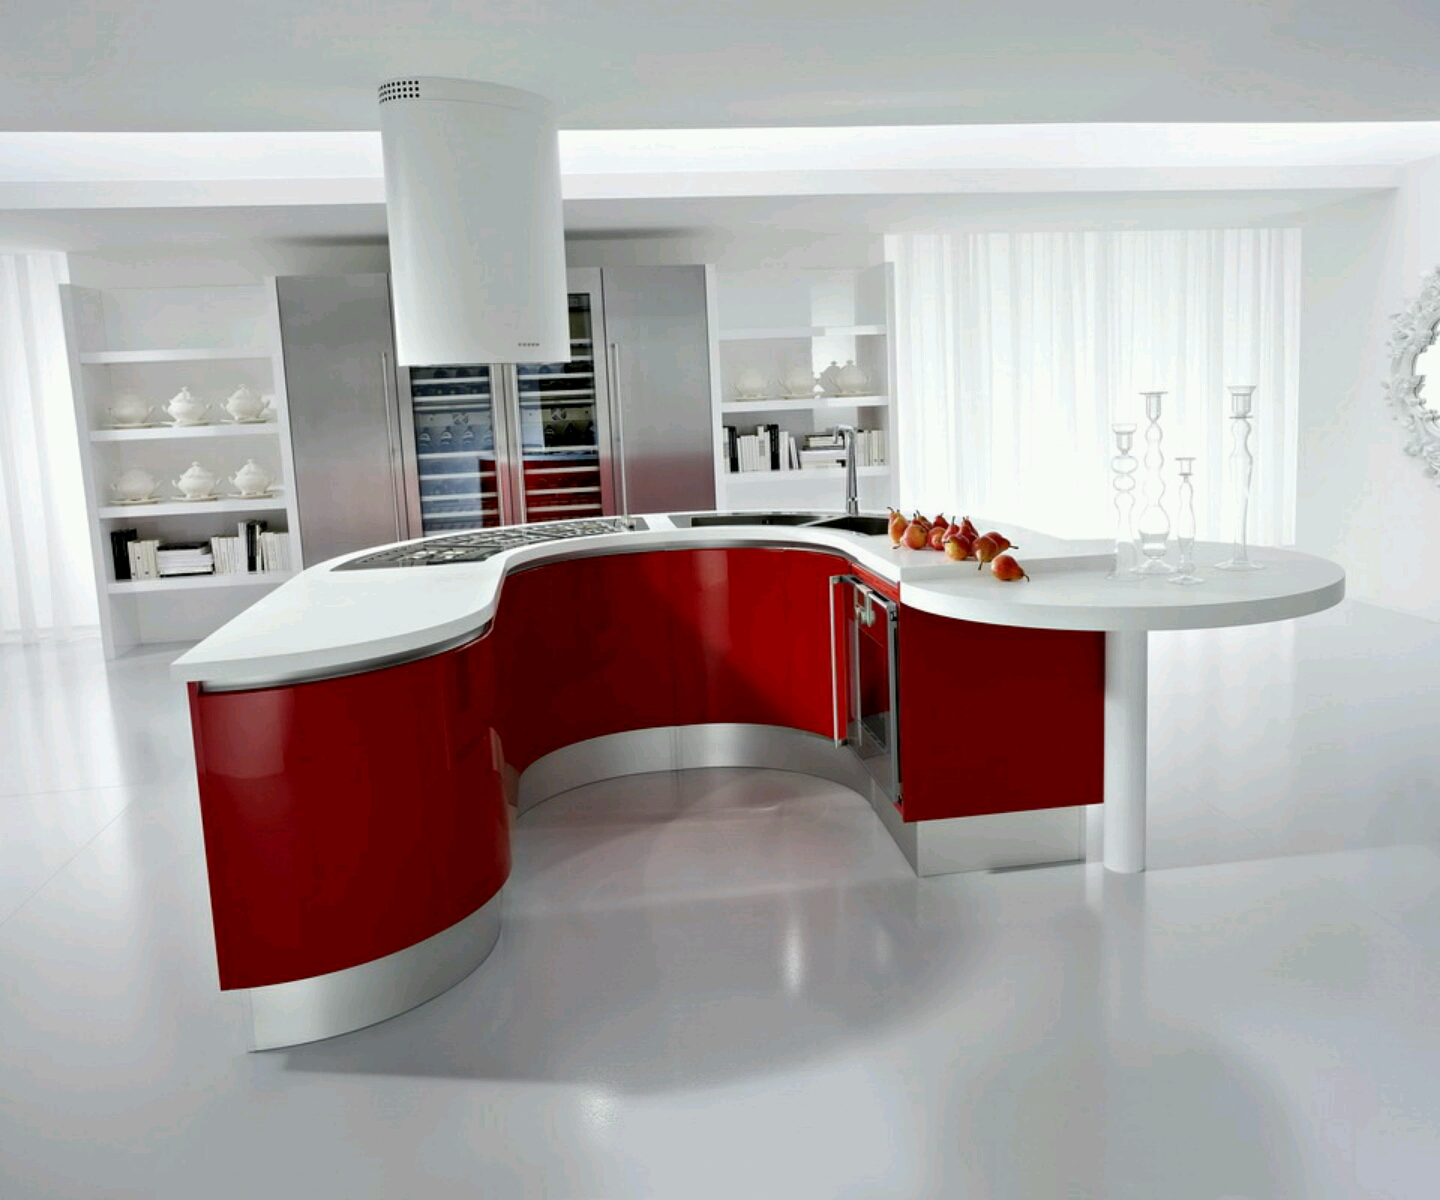 Modern kitchen cabinets designs ideas furniture gallery for Modern kitchen inspiration